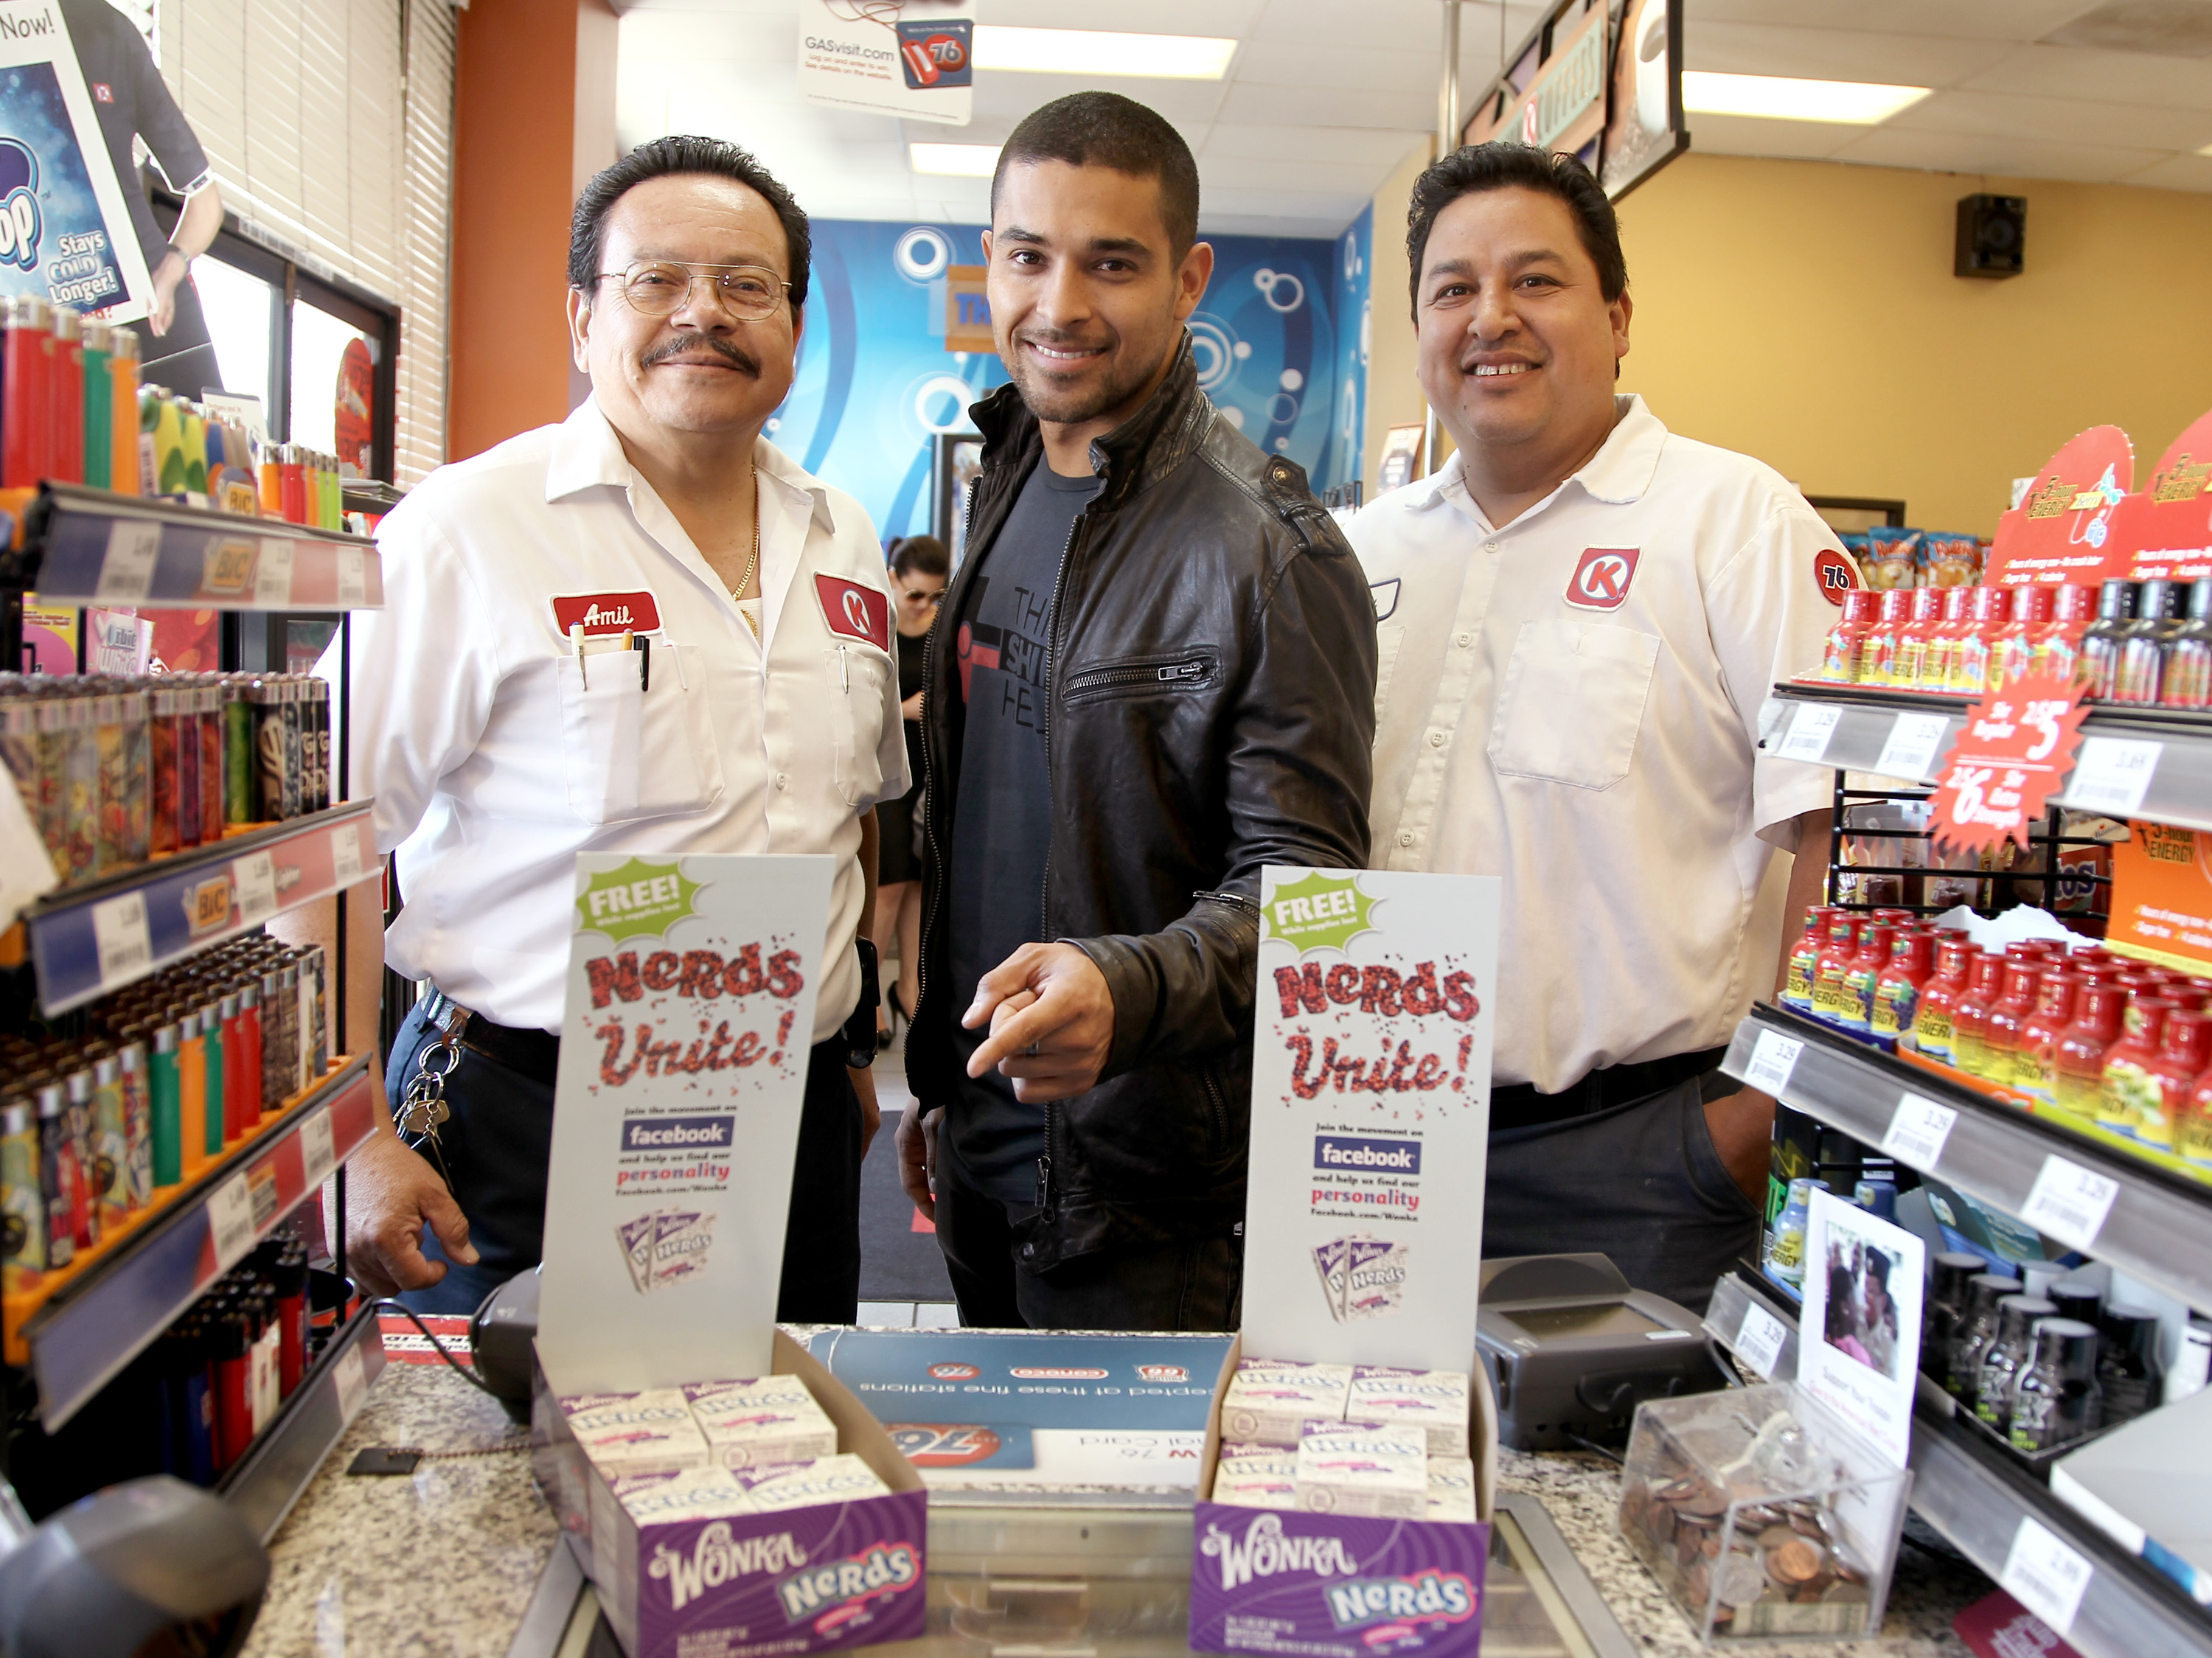 Wilmer Valderrama xxxxx on Tuesday June 5, 2012, in Los Angeles. (Photo by Matt Sayles/Invision for Wonka/AP Images)